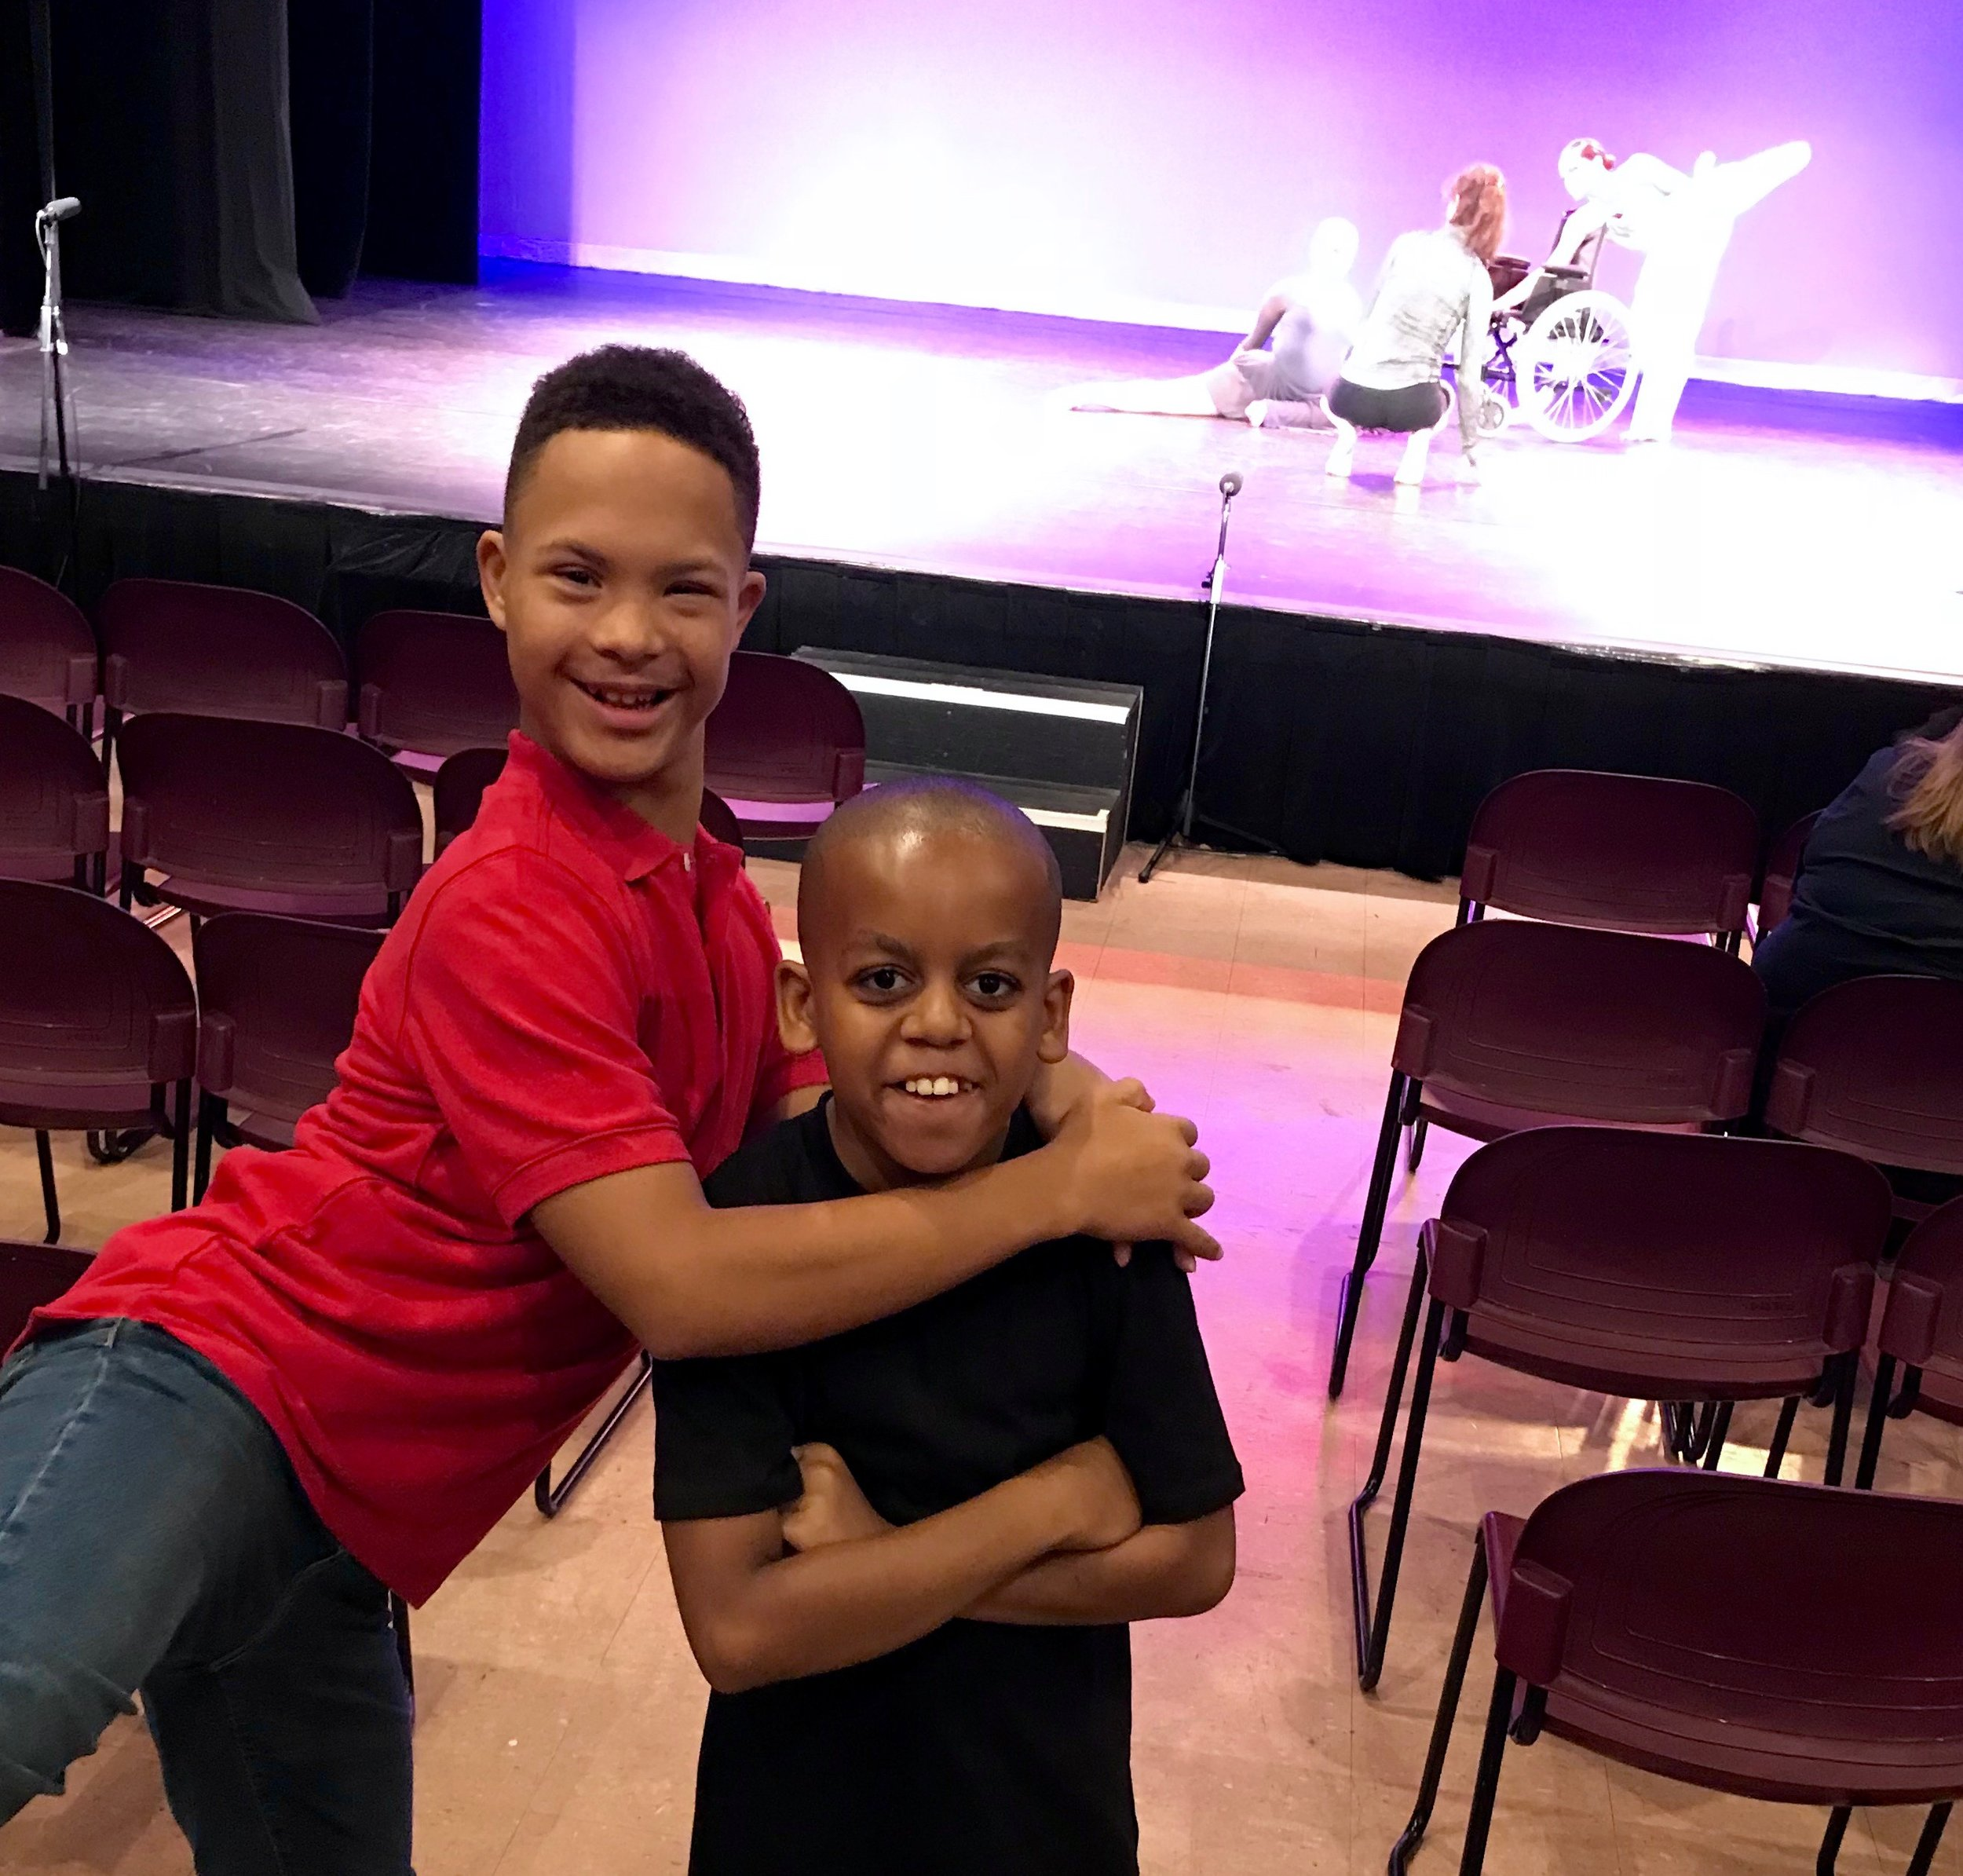 Apprentice Malik and student-dancer Kamran hug and smile at the camera at the O photoshoot. In the background are Melissa and two dancers getting ready for some photos.